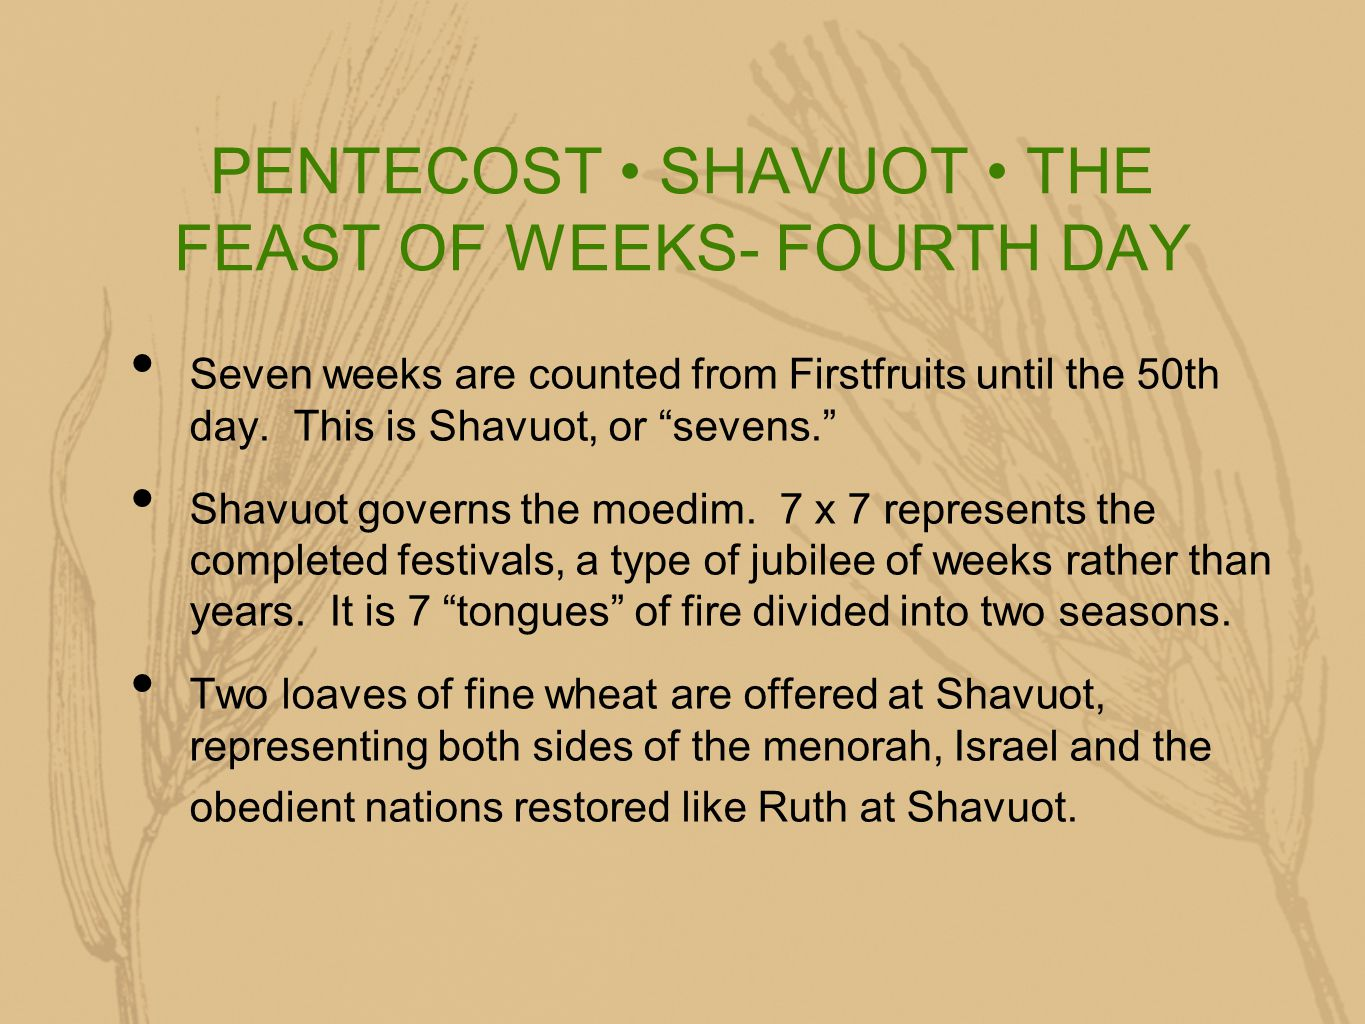 PENTECOST SHAVUOT THE FEAST OF WEEKS- FOURTH DAY Seven weeks are counted from Firstfruits until the 50th day.